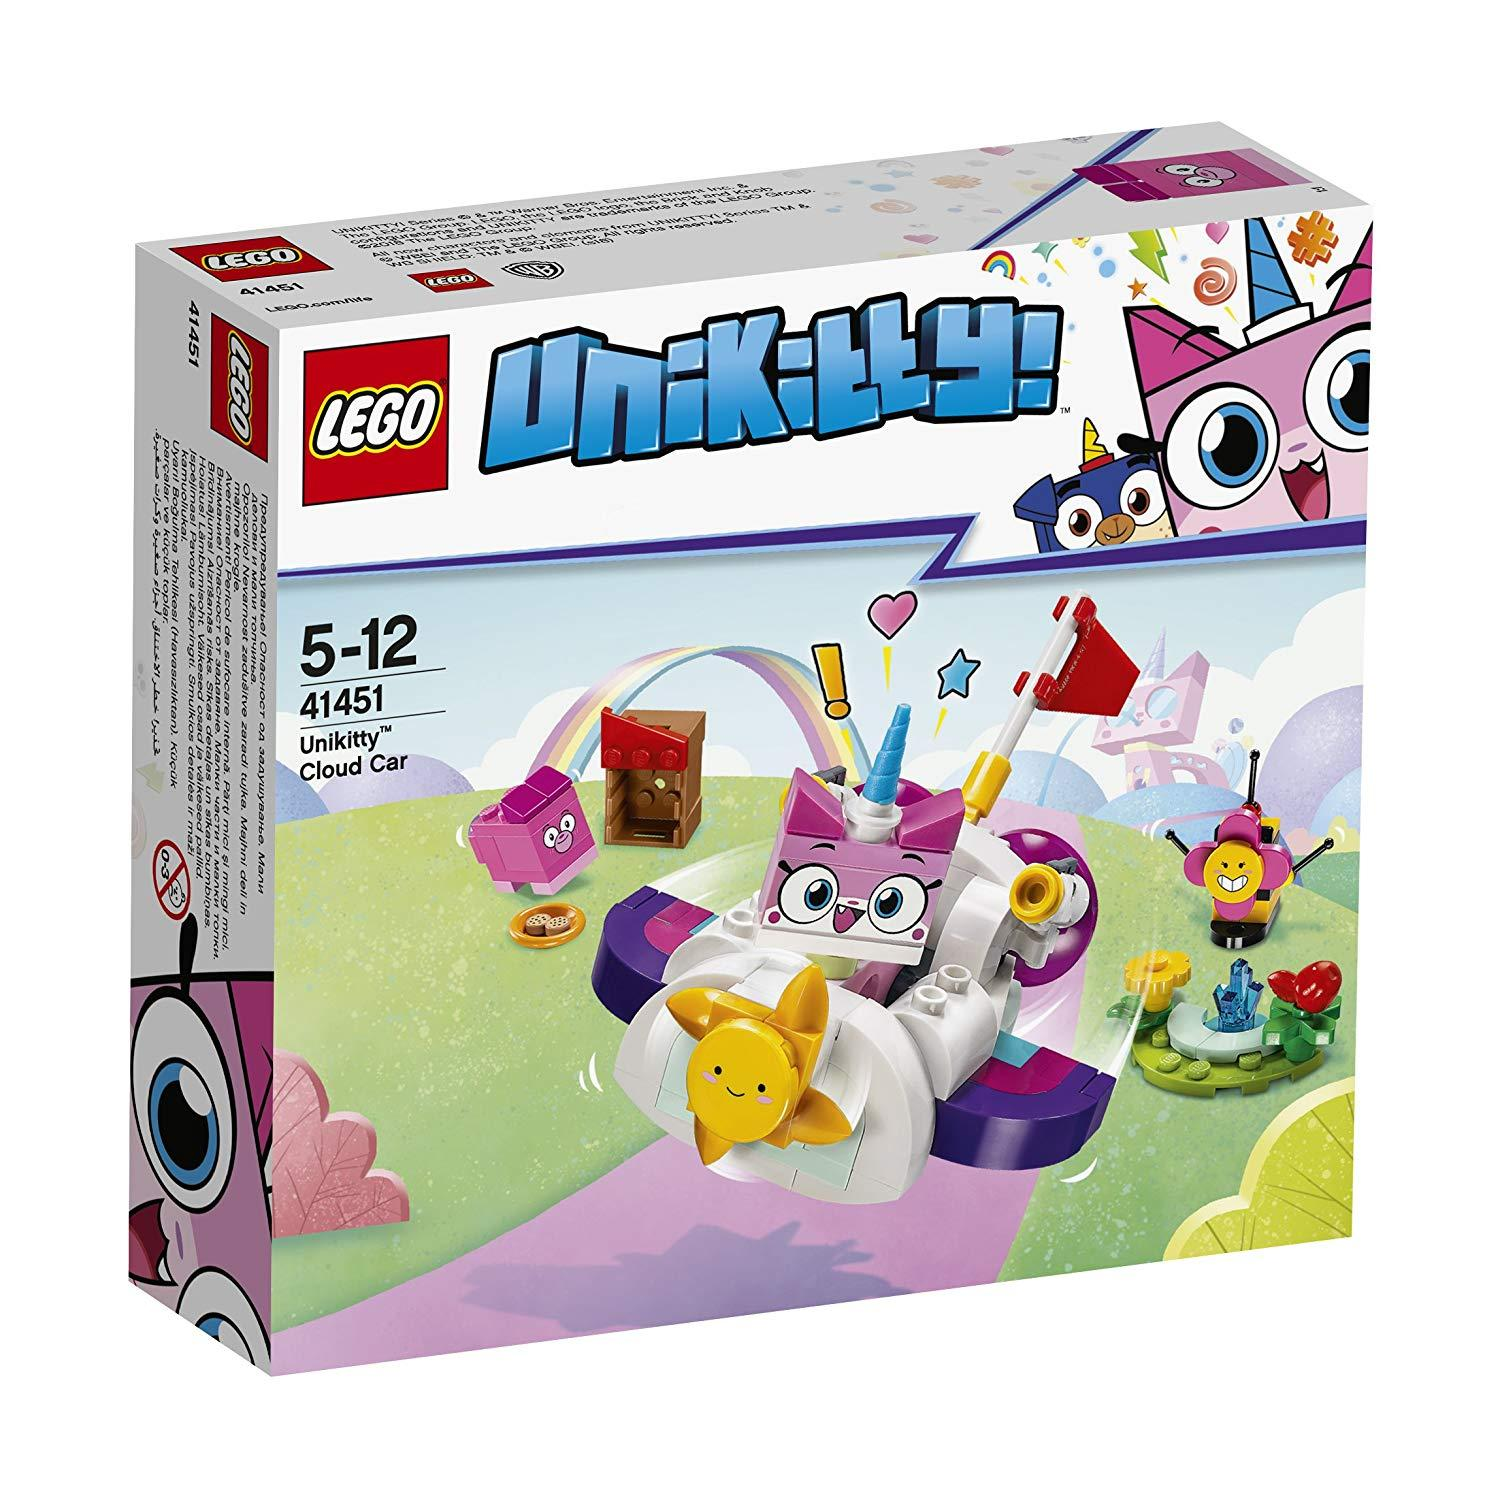 Lego Unikitty Cloud Car (41451)